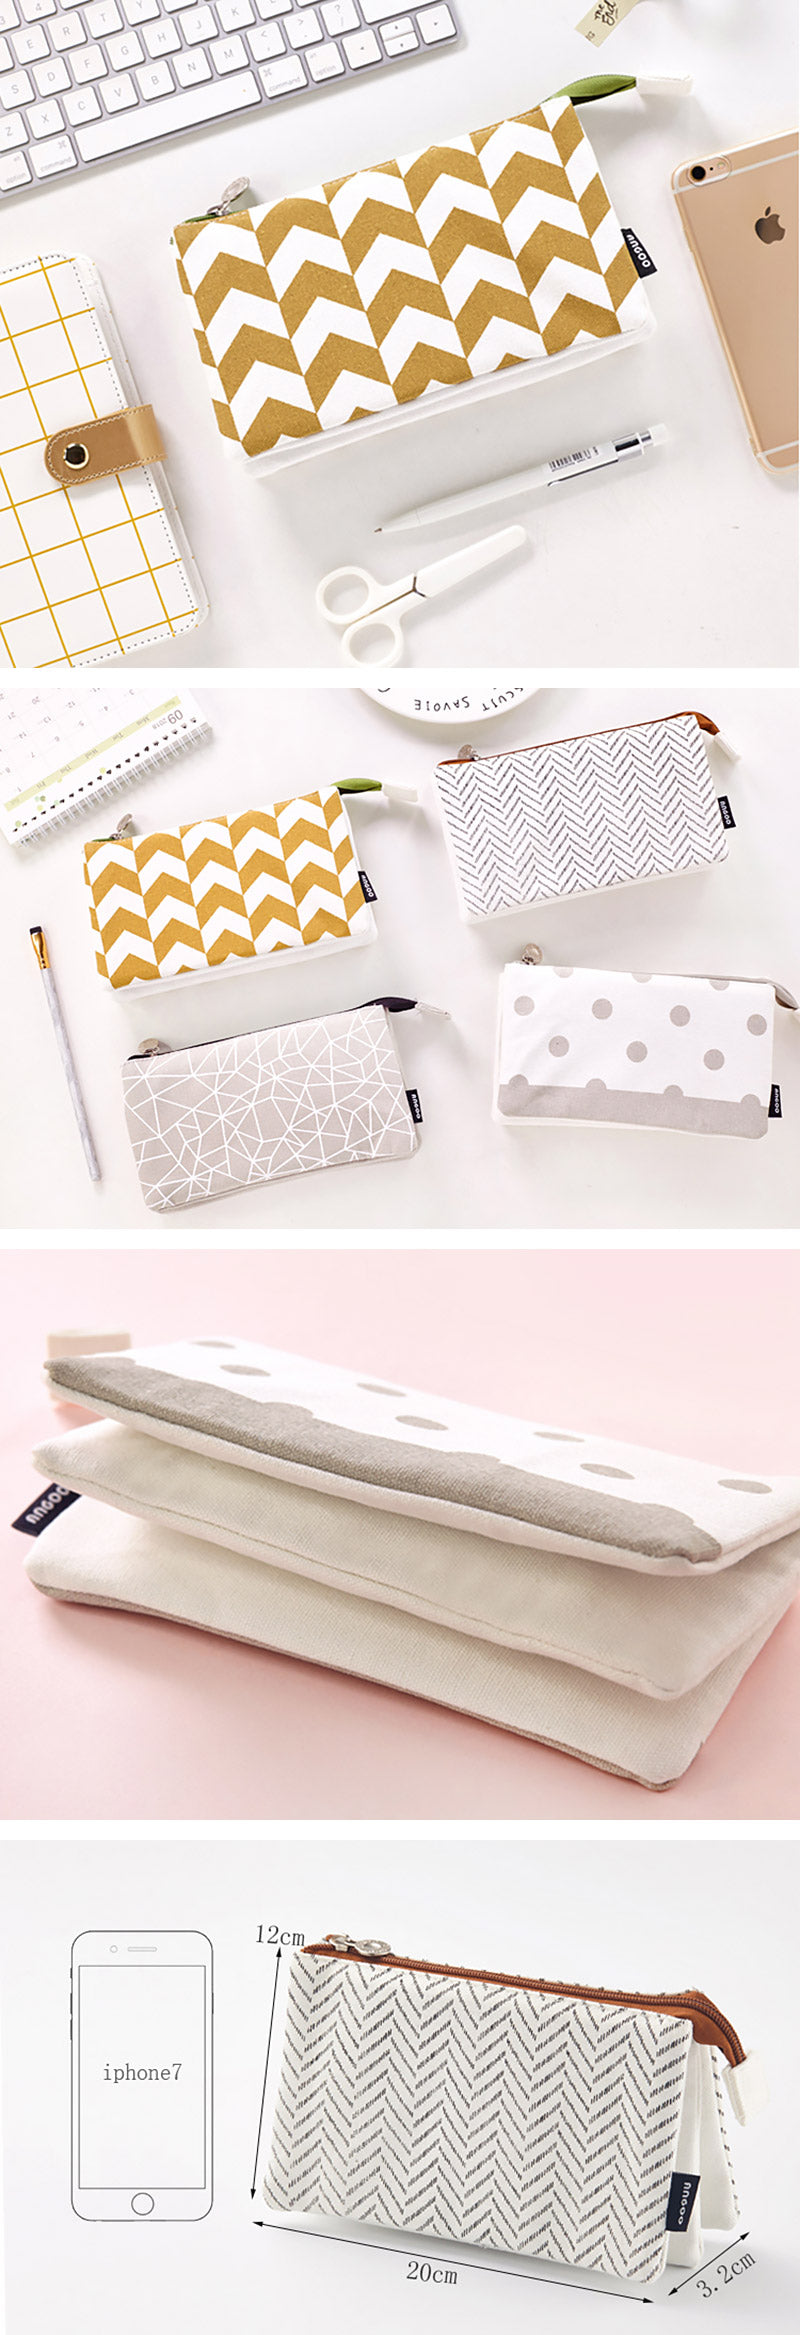 Triple Pouch Dual Zipper Pencil Case - Detail